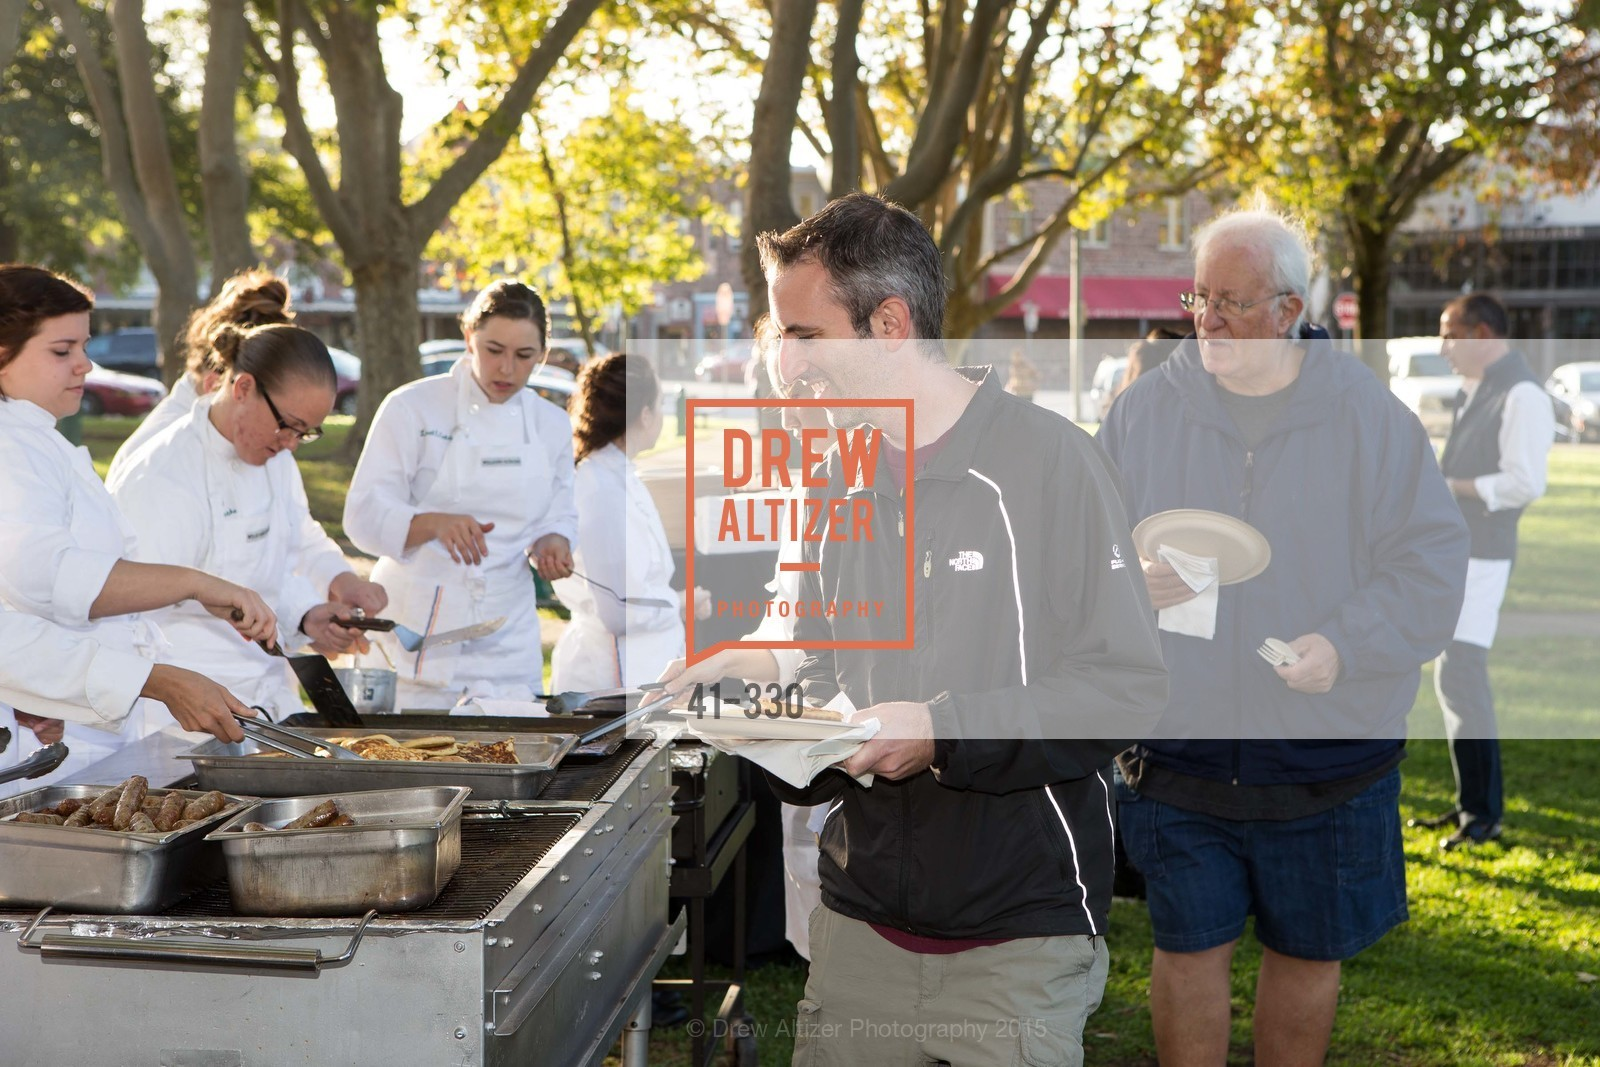 Atmosphere, Williams Sonoma Pancake Breakfast, October 3rd, 2015, Photo,Drew Altizer, Drew Altizer Photography, full-service agency, private events, San Francisco photographer, photographer california